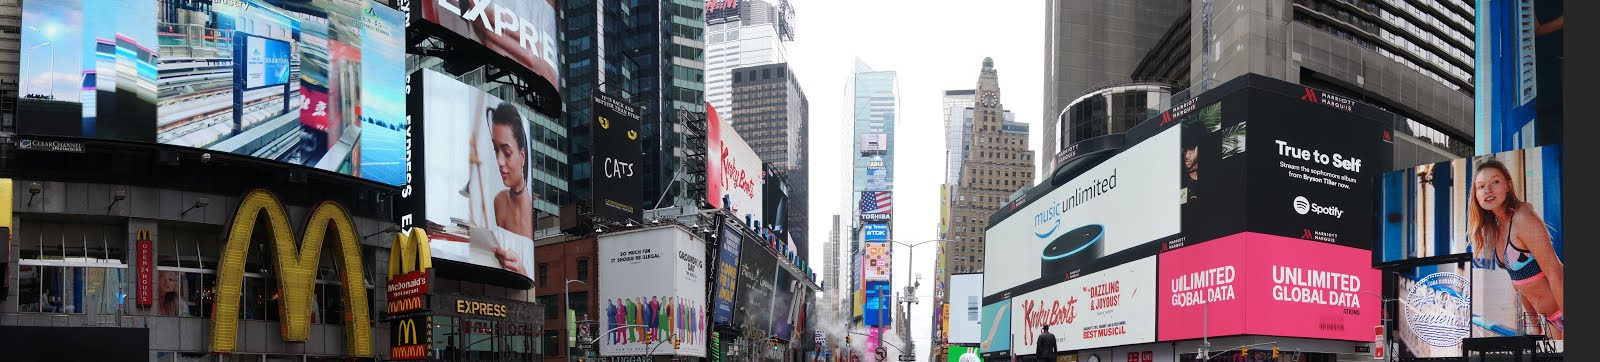 Visiting New York City for the first time - Times Square